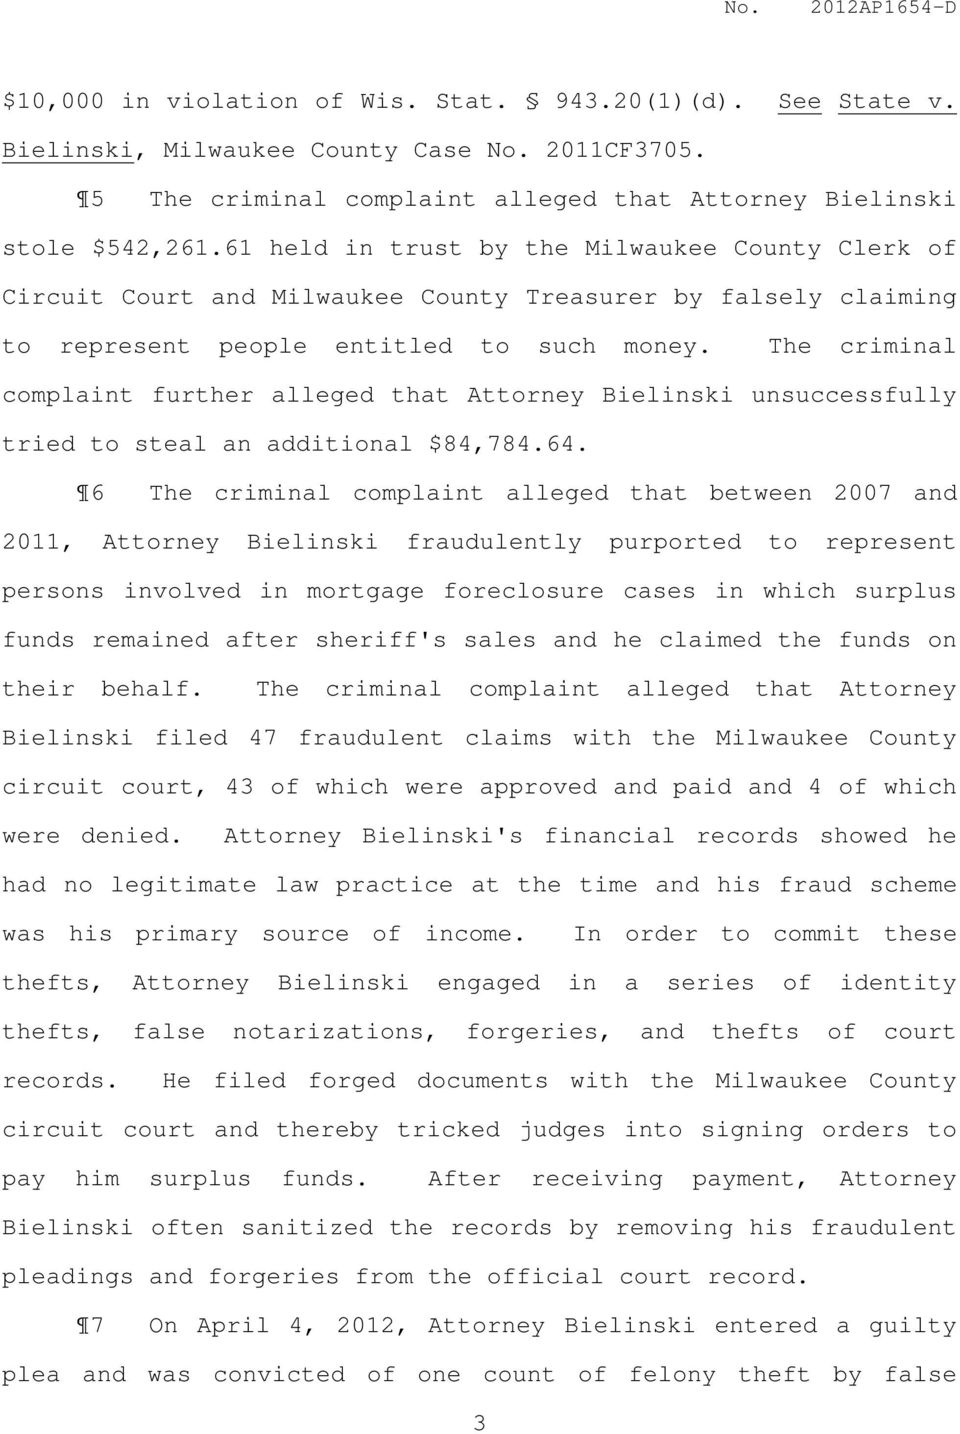 The criminal complaint further alleged that Attorney Bielinski unsuccessfully tried to steal an additional $84,784.64.